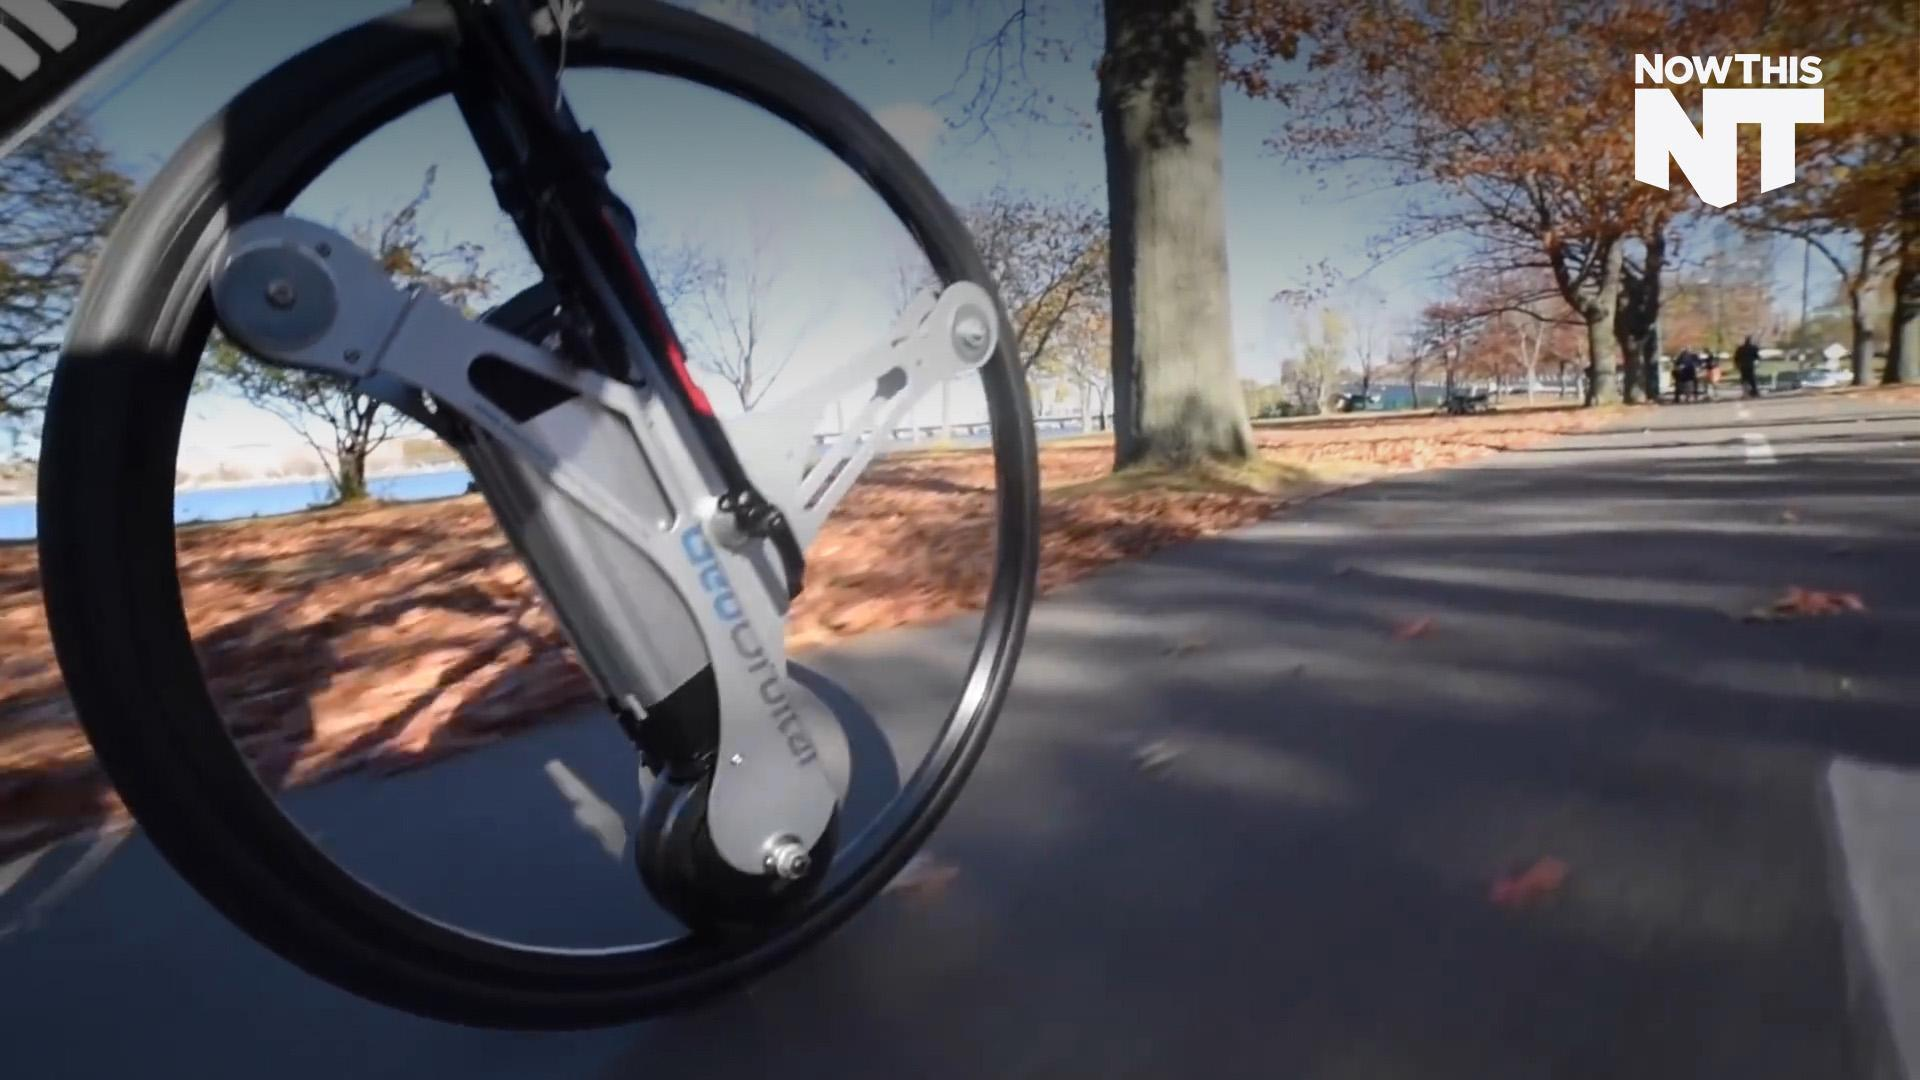 GeoOrbital Gives Any Bicycle An Electric Motor In 60 Seconds